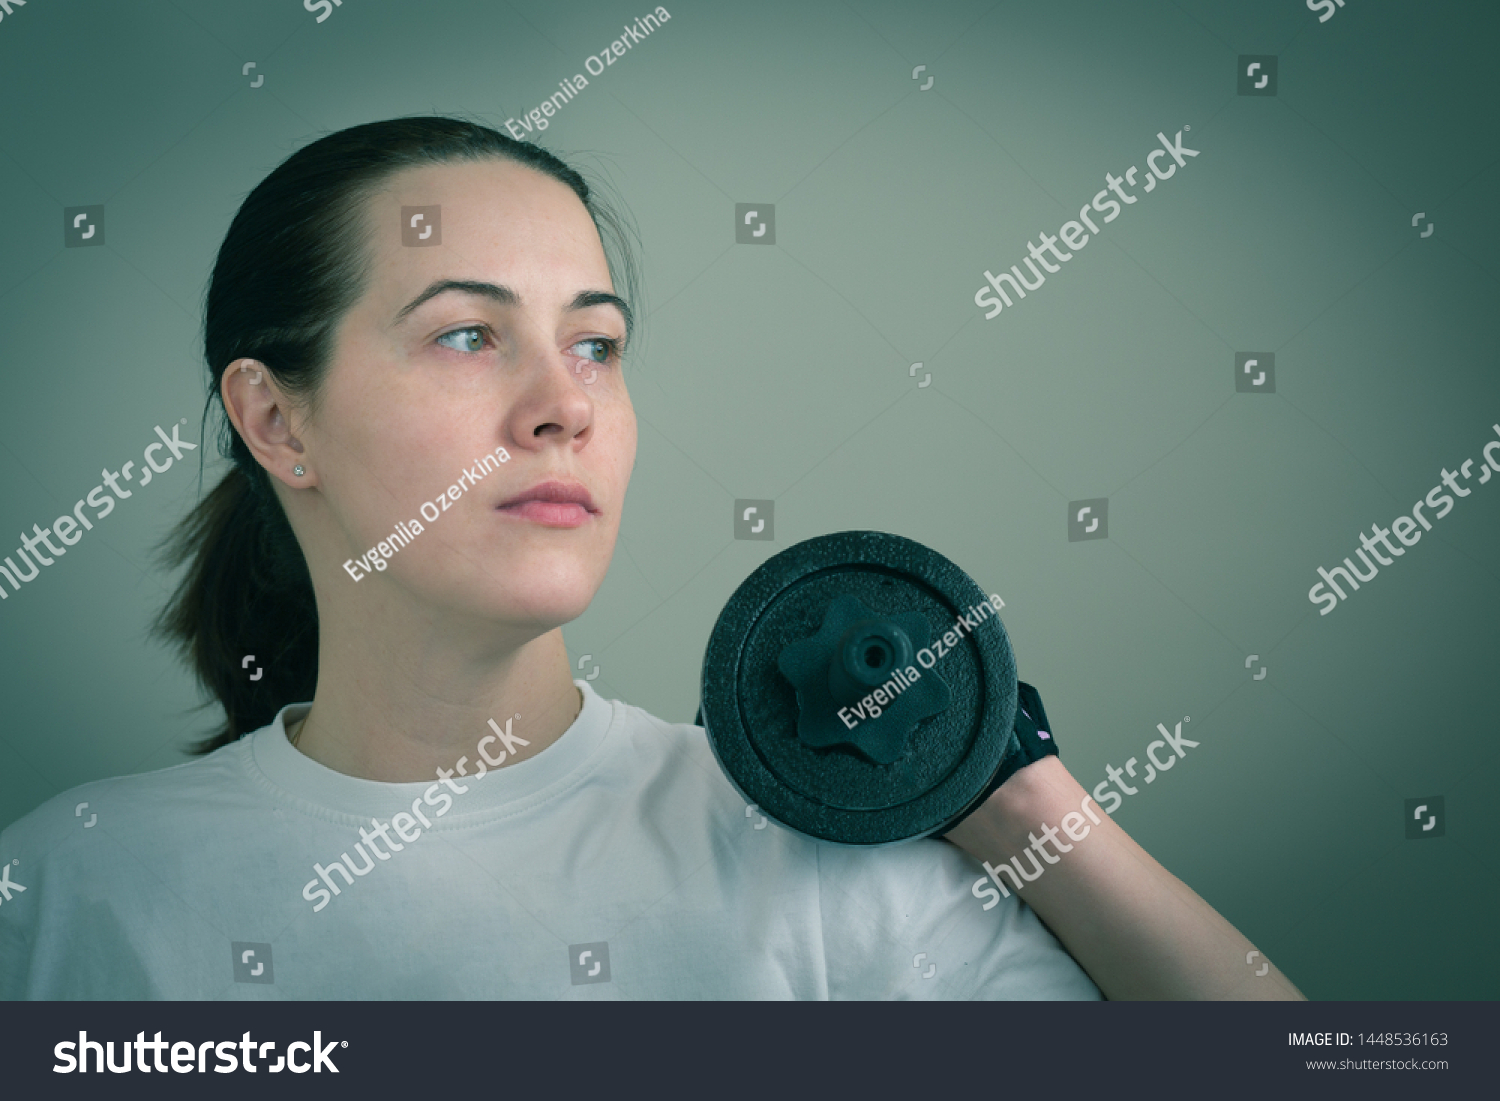 Portrait of a white caucasian woman holding heavy iron dumbbells close-up. Toned image in blue. Concept of home fitness due  coronavirus quarantine